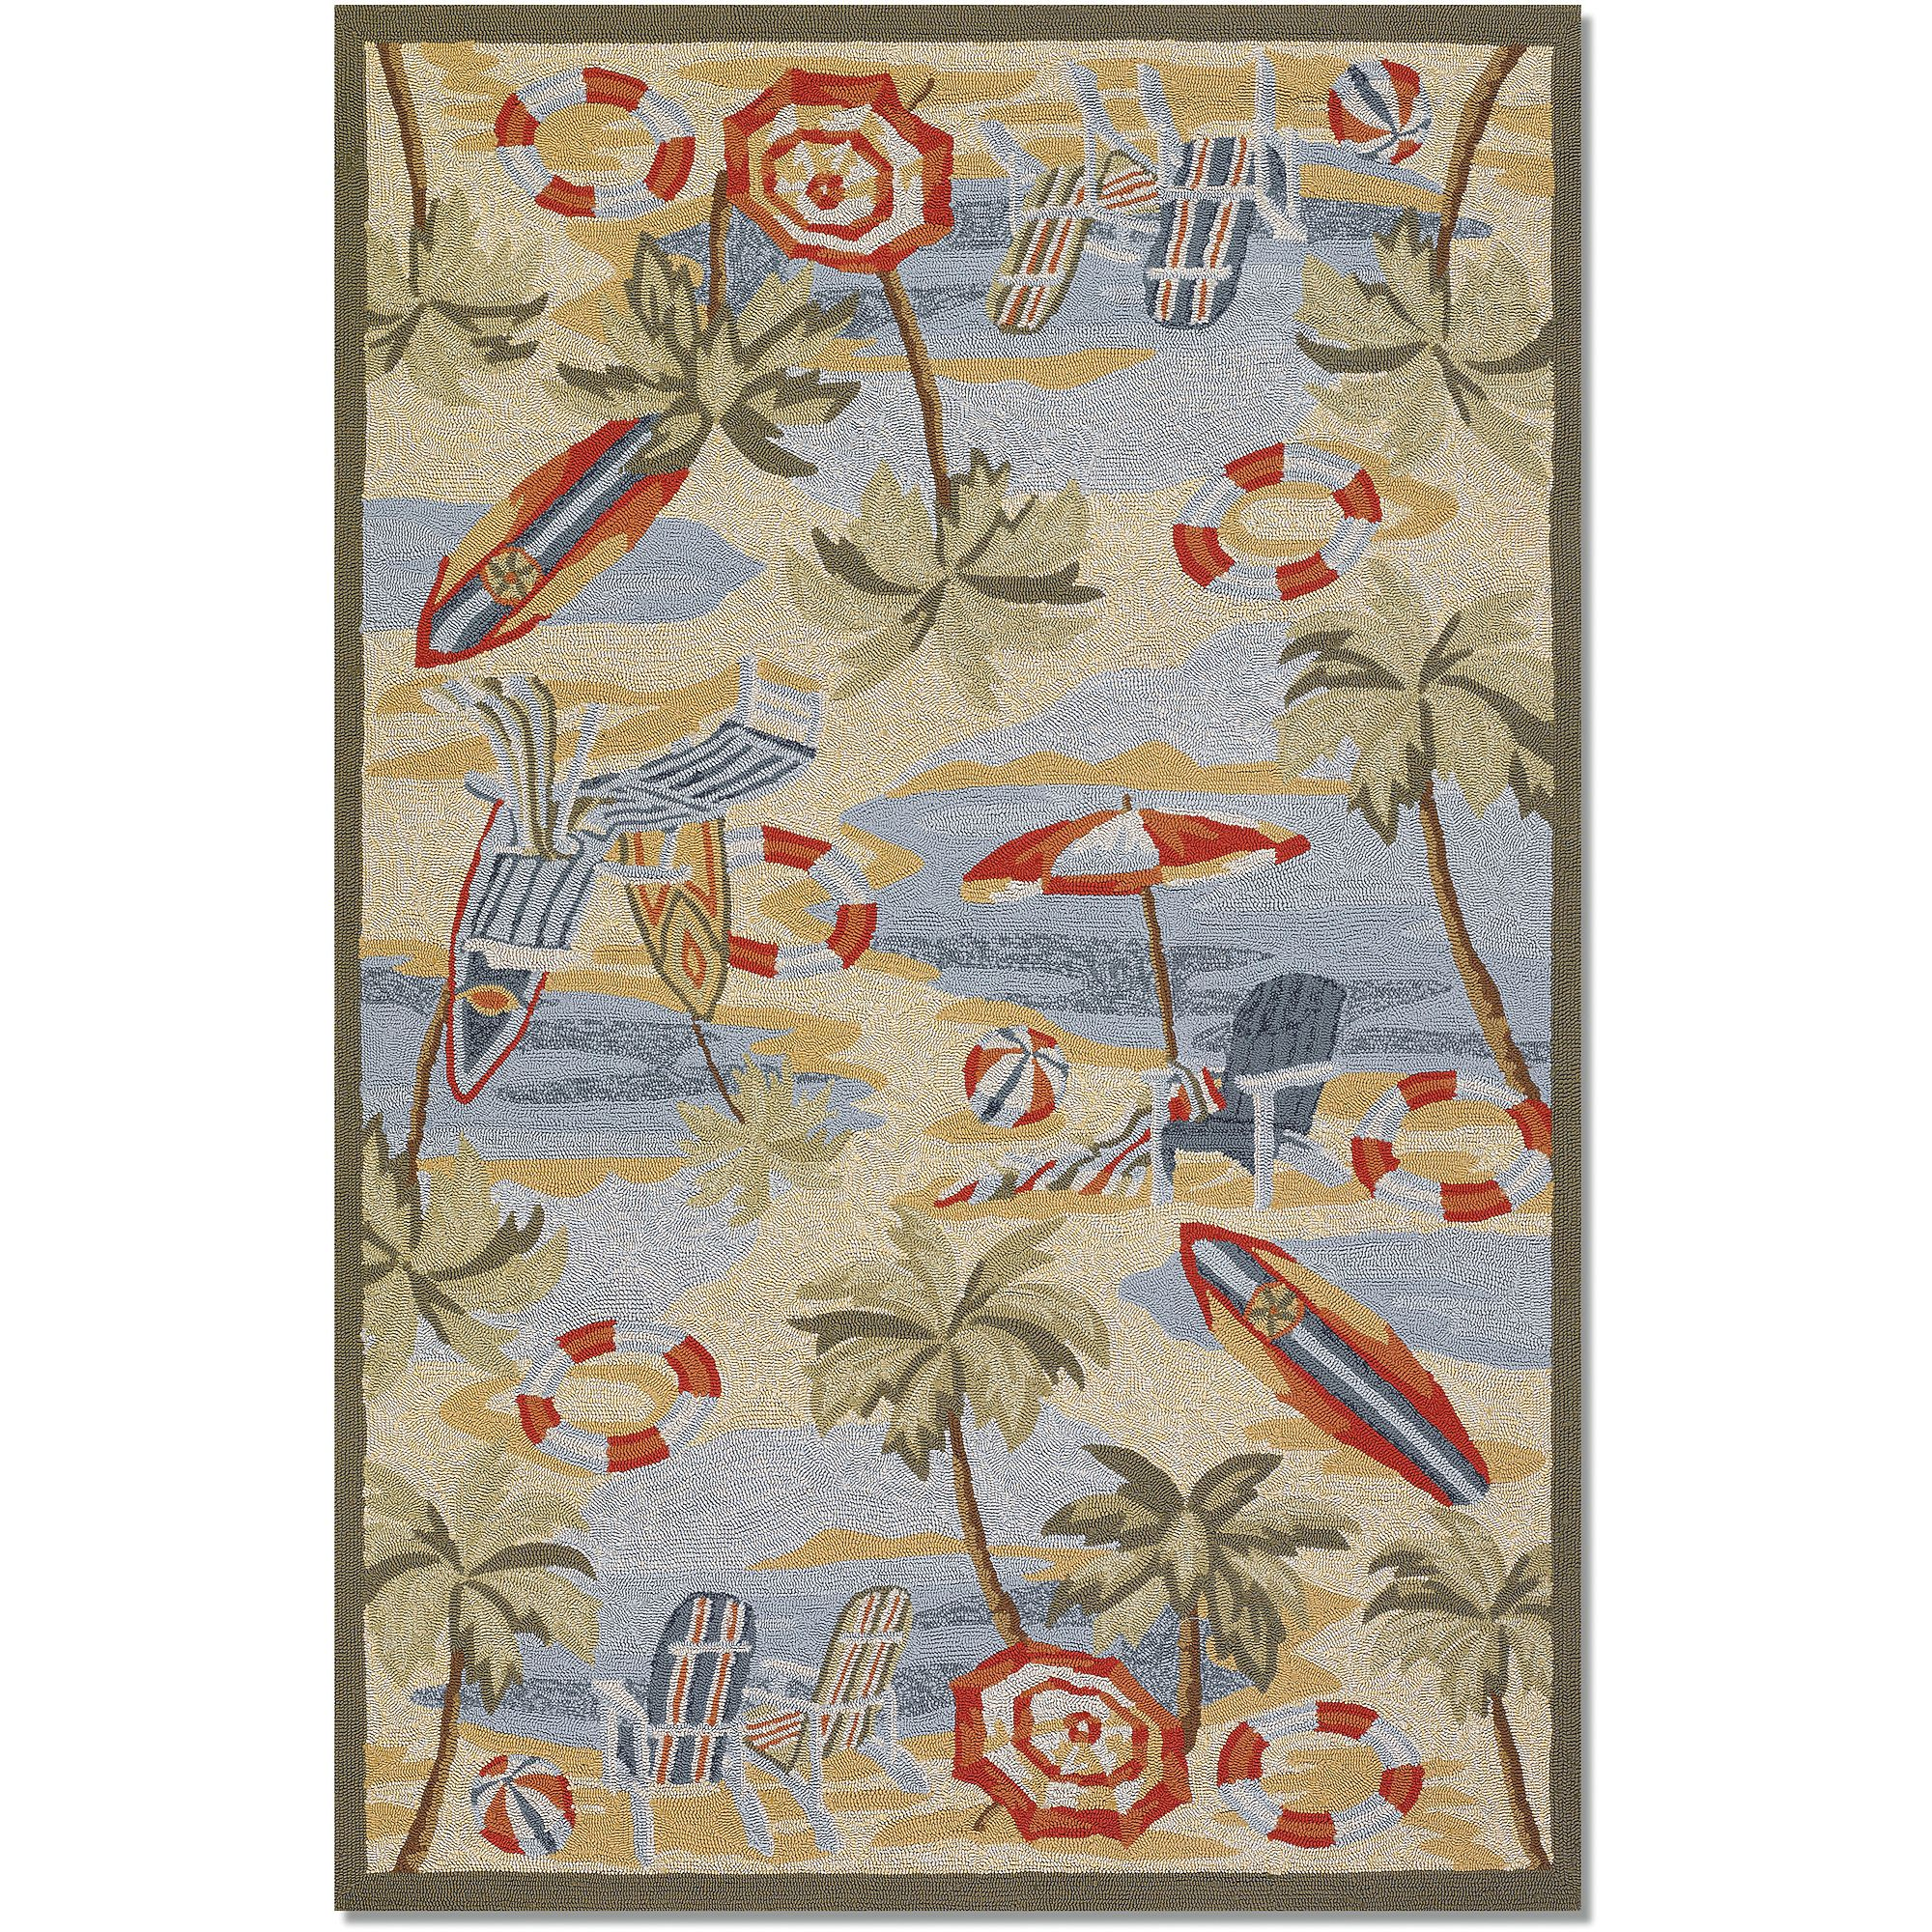 Couristan Outdoor Escape Cocoa Beach Rug, Sand